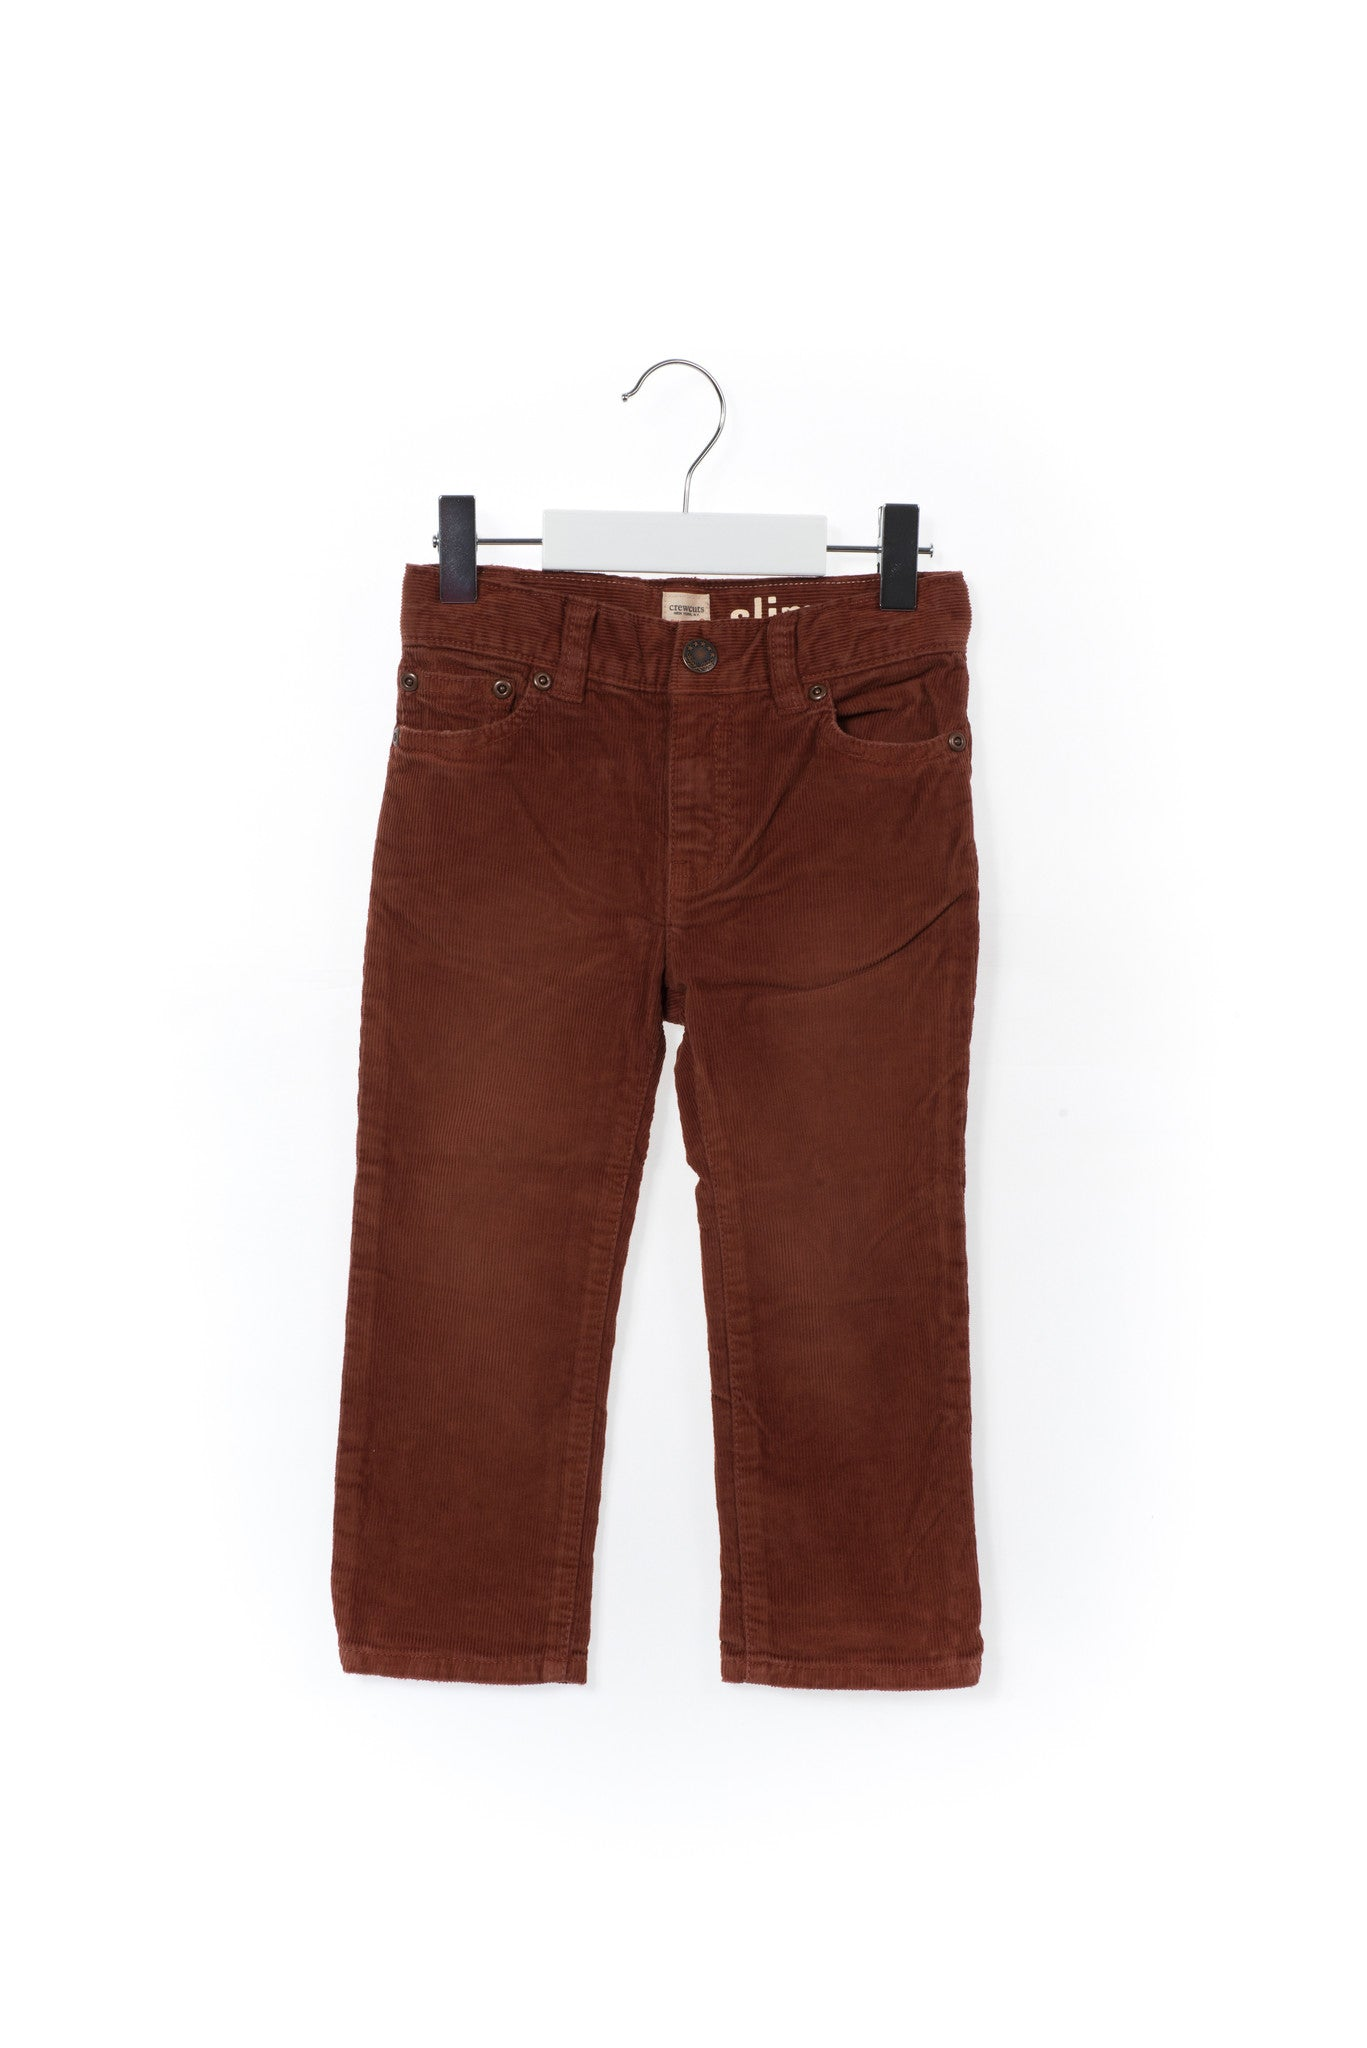 10001088 Crewcuts Kids~Pants 2T at Retykle